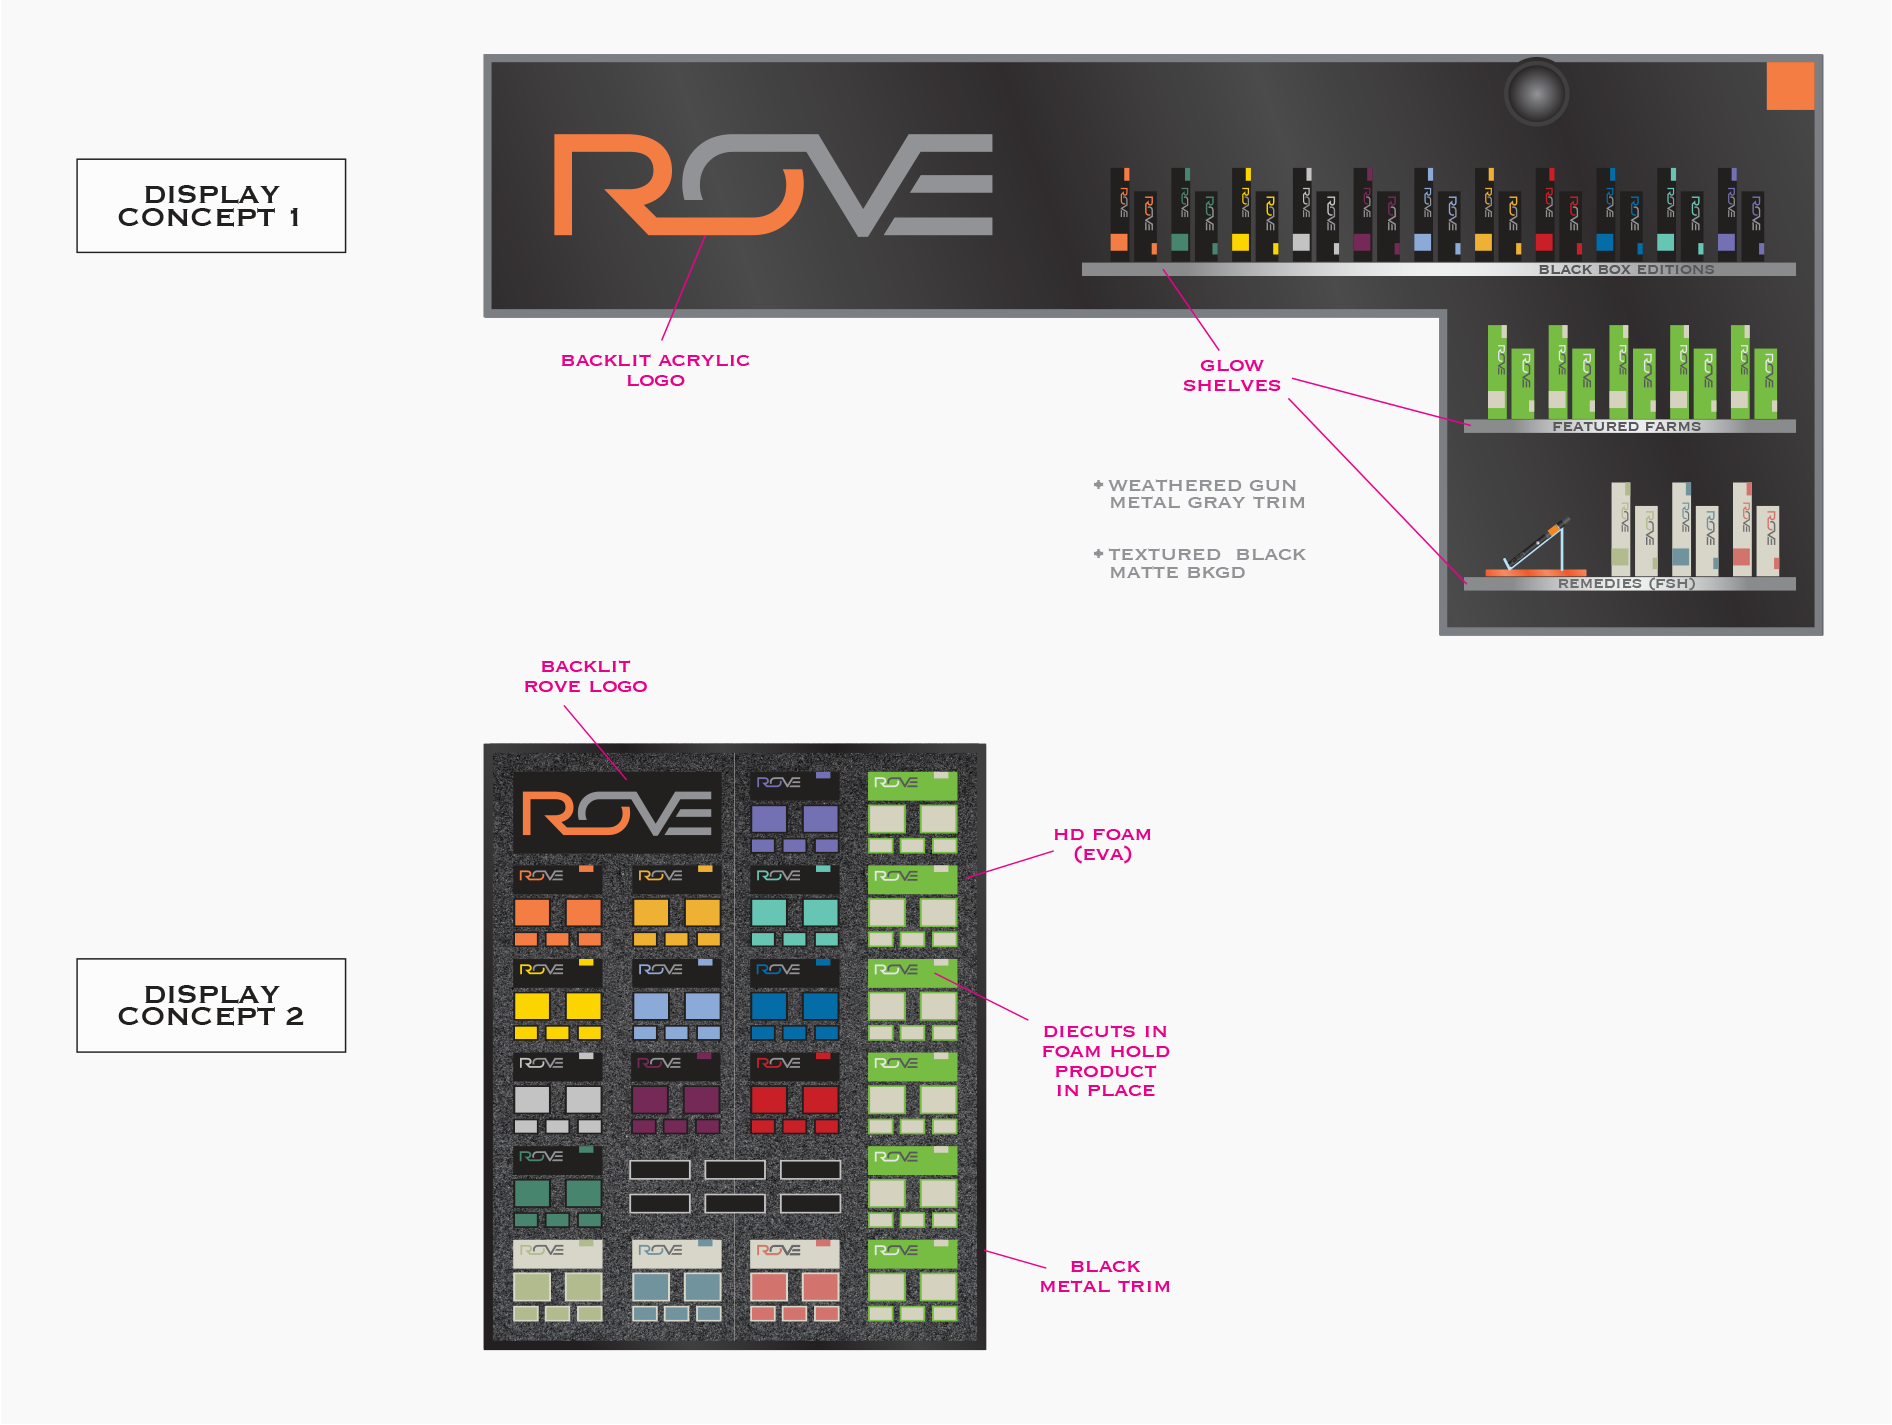 Rove brand display concepts